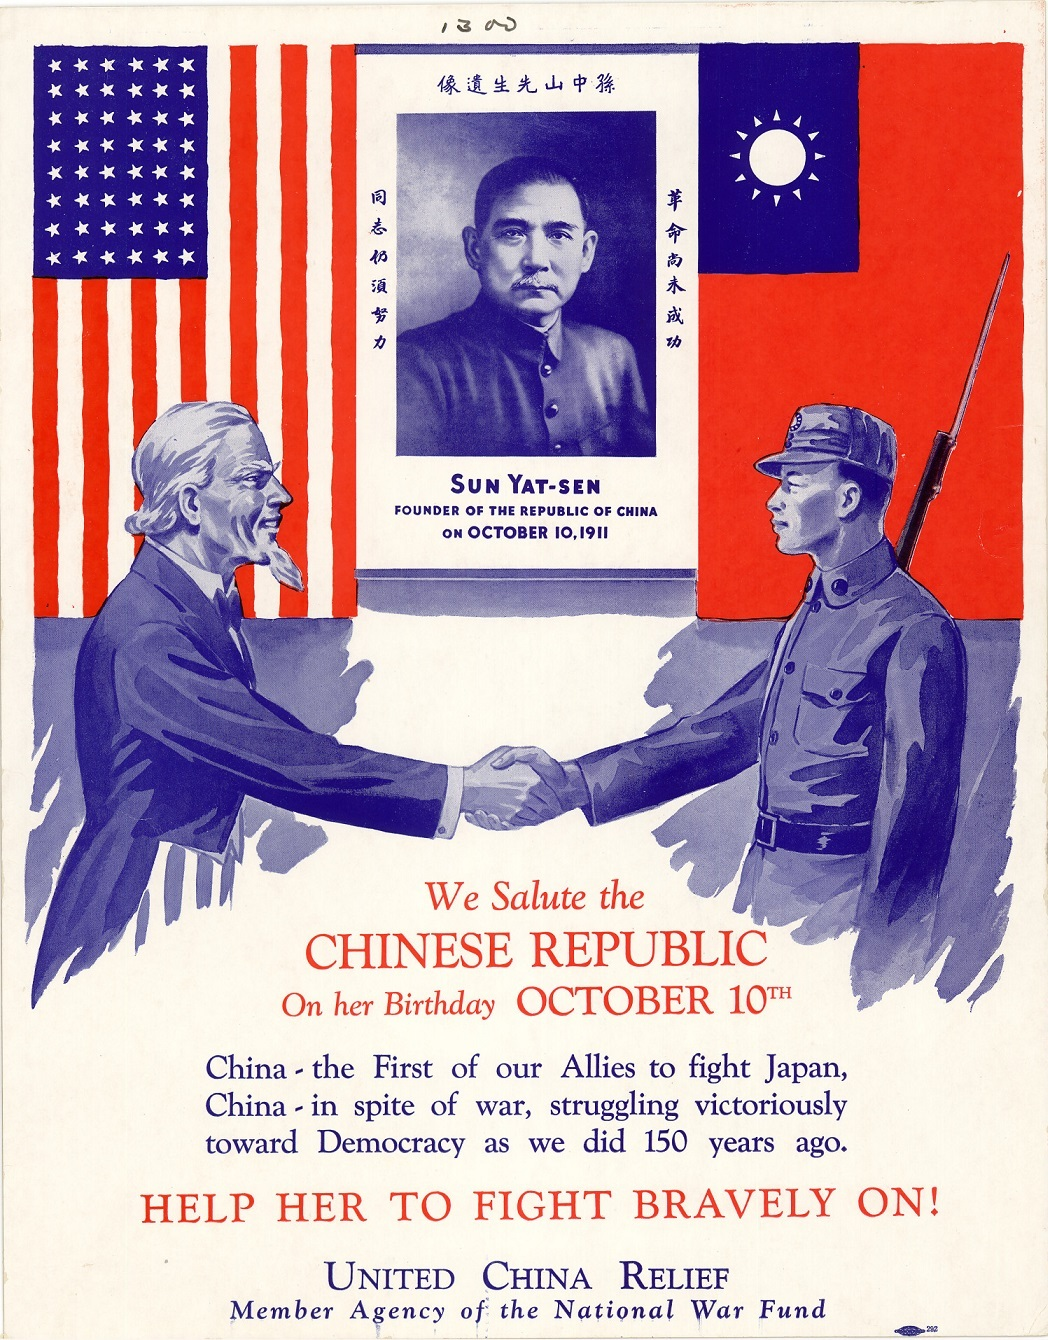 http://static.tvtropes.org/pmwiki/pub/images/united_china_relief1.jpg